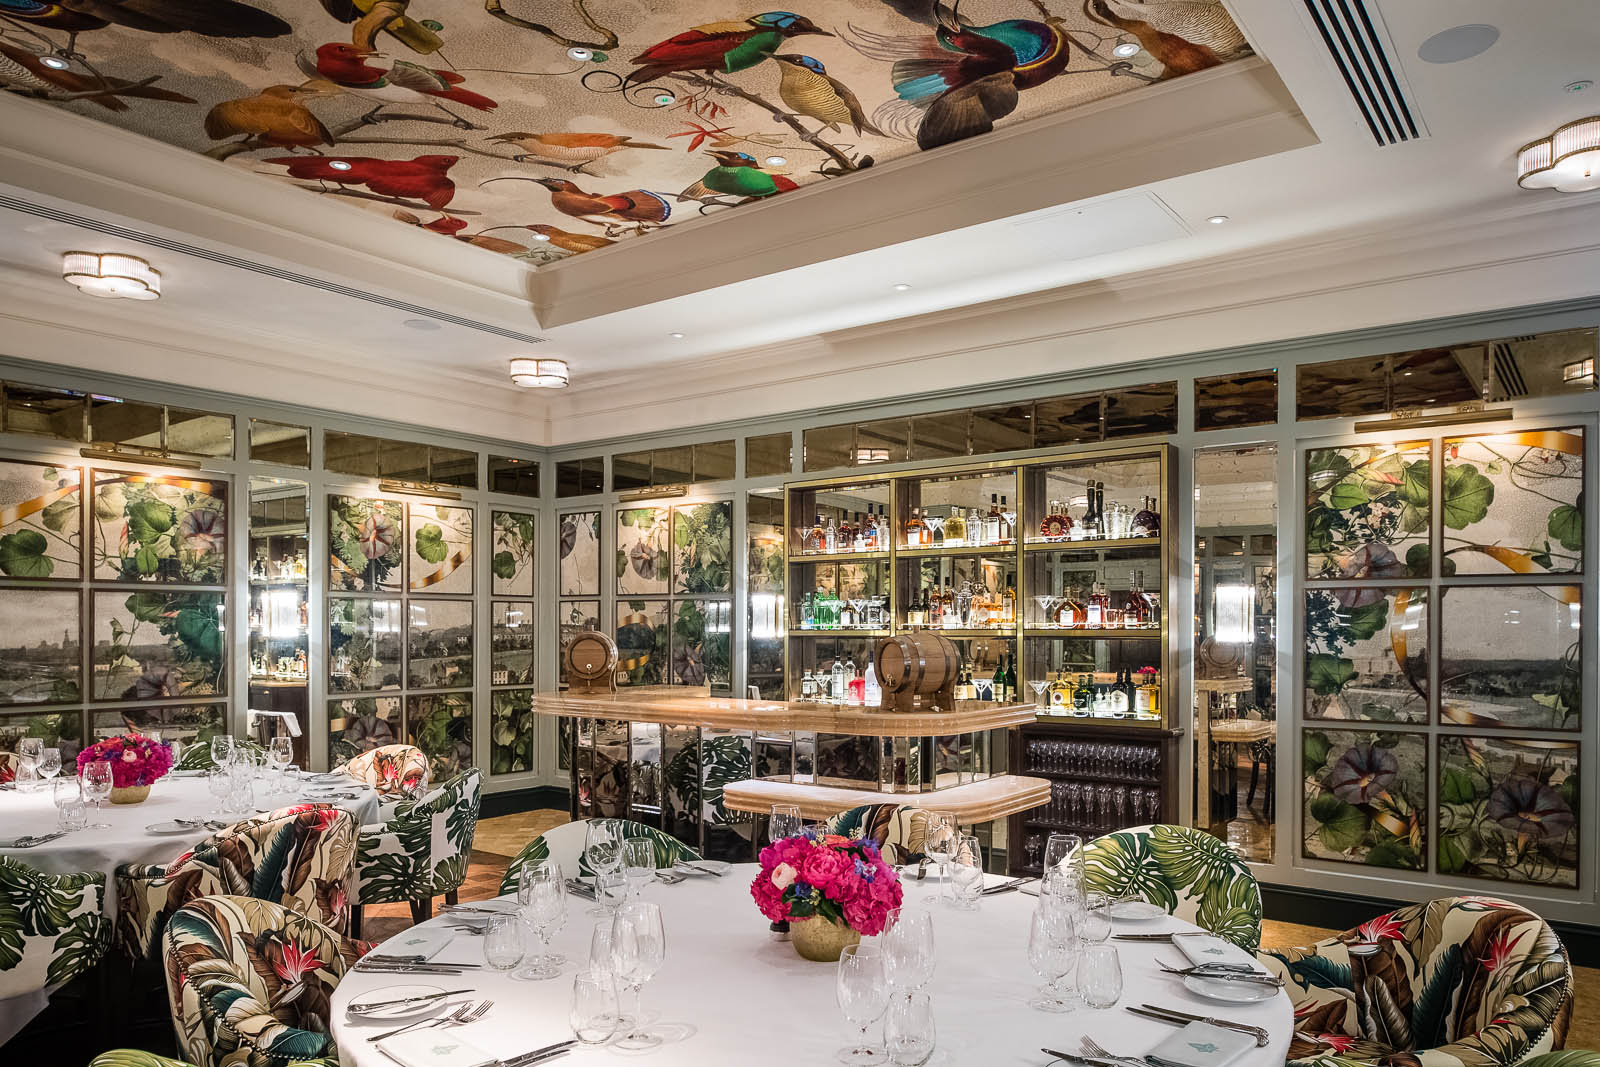 Private Dining Room in Dublin, The Ivy Dawson Street, Dublin - The Ivy Dawson Street Dublin